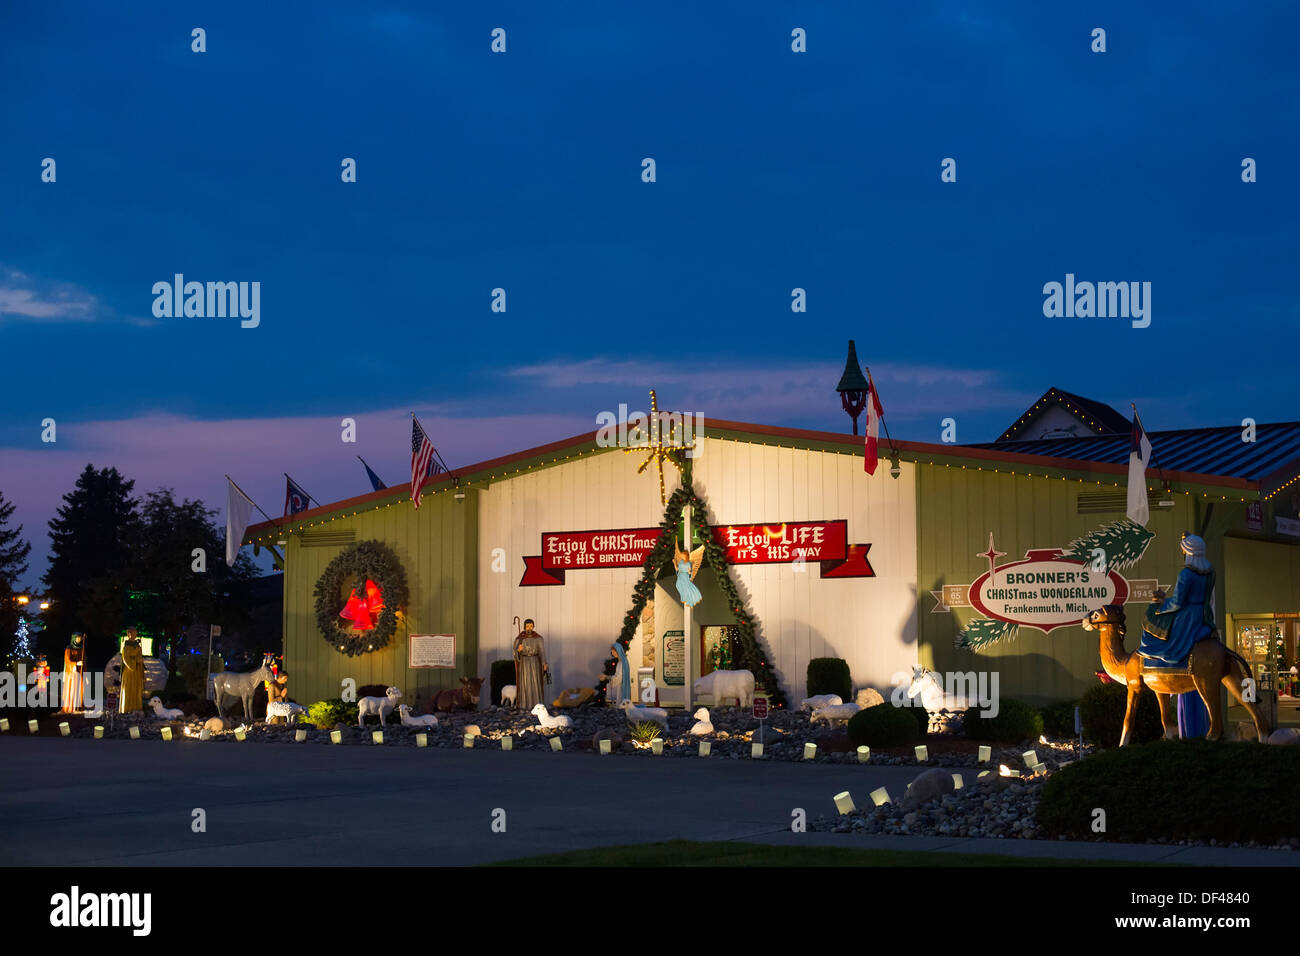 frankenmuth michigan bronners christmas wonderland the worlds largest christmas store stock